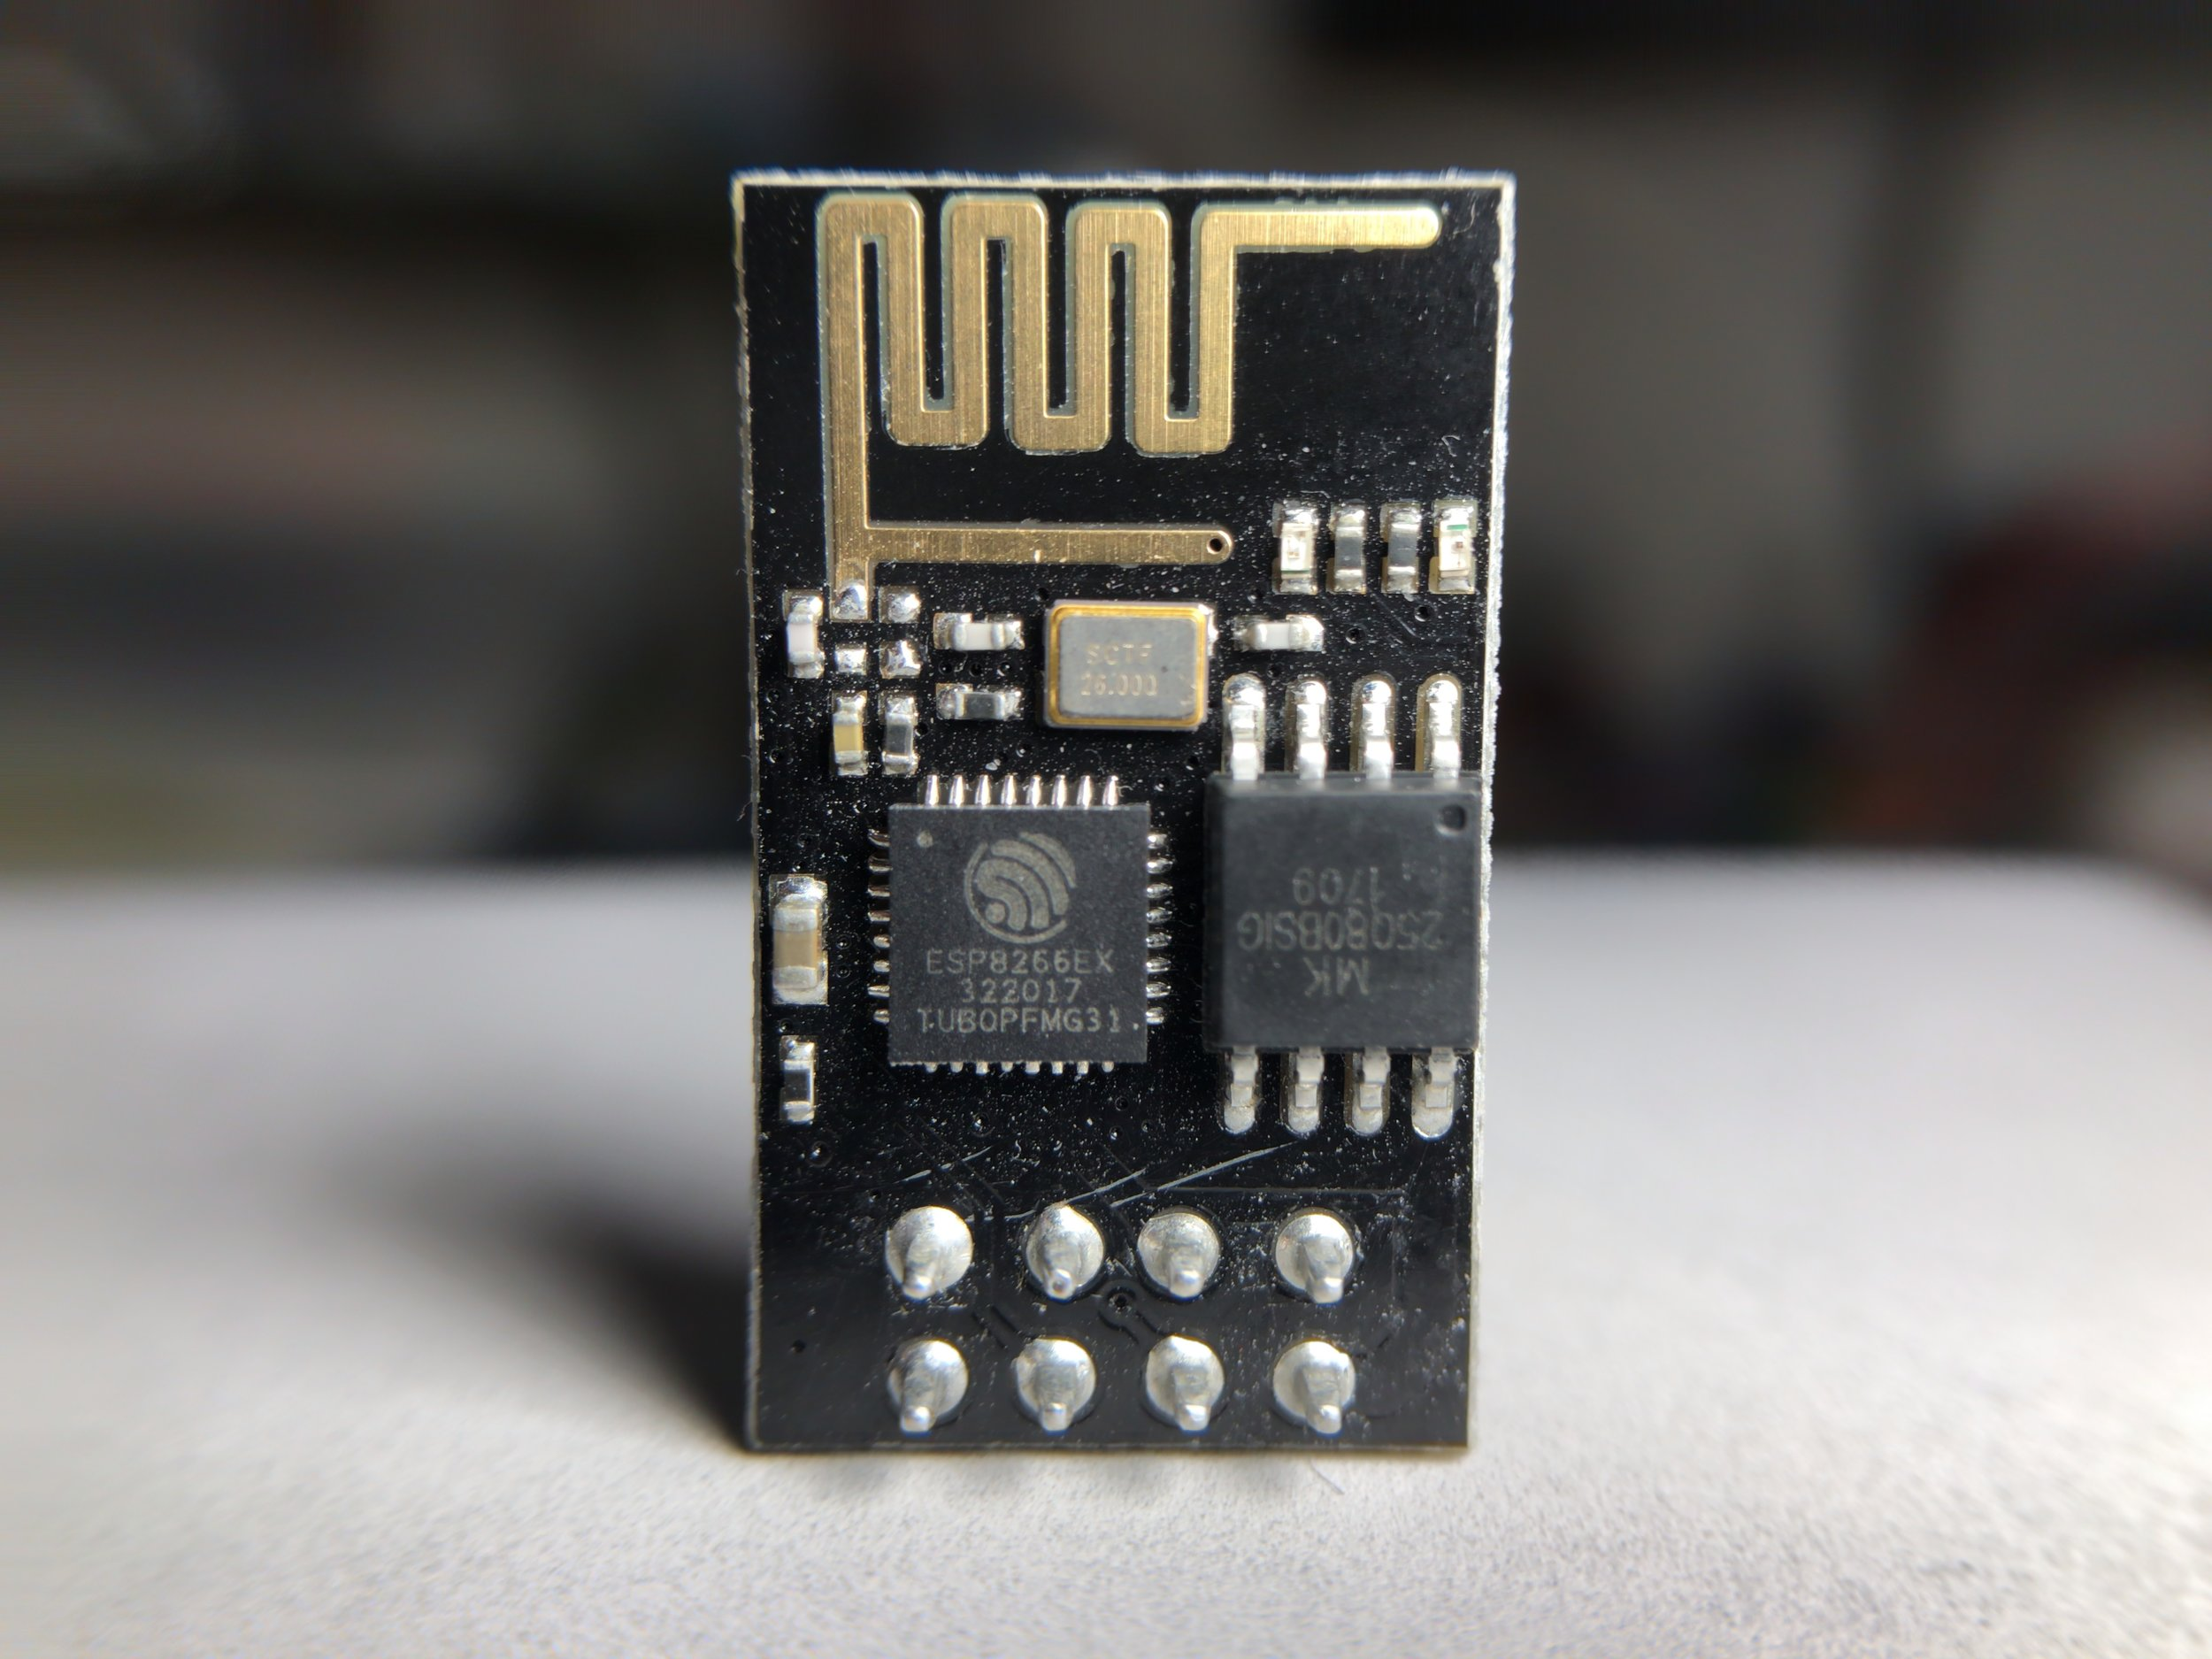 Figure 1:  ESP8266 module with 8 breakout pins. This module is just over $3 when bought in a 4-pack, and even cheaper at times.